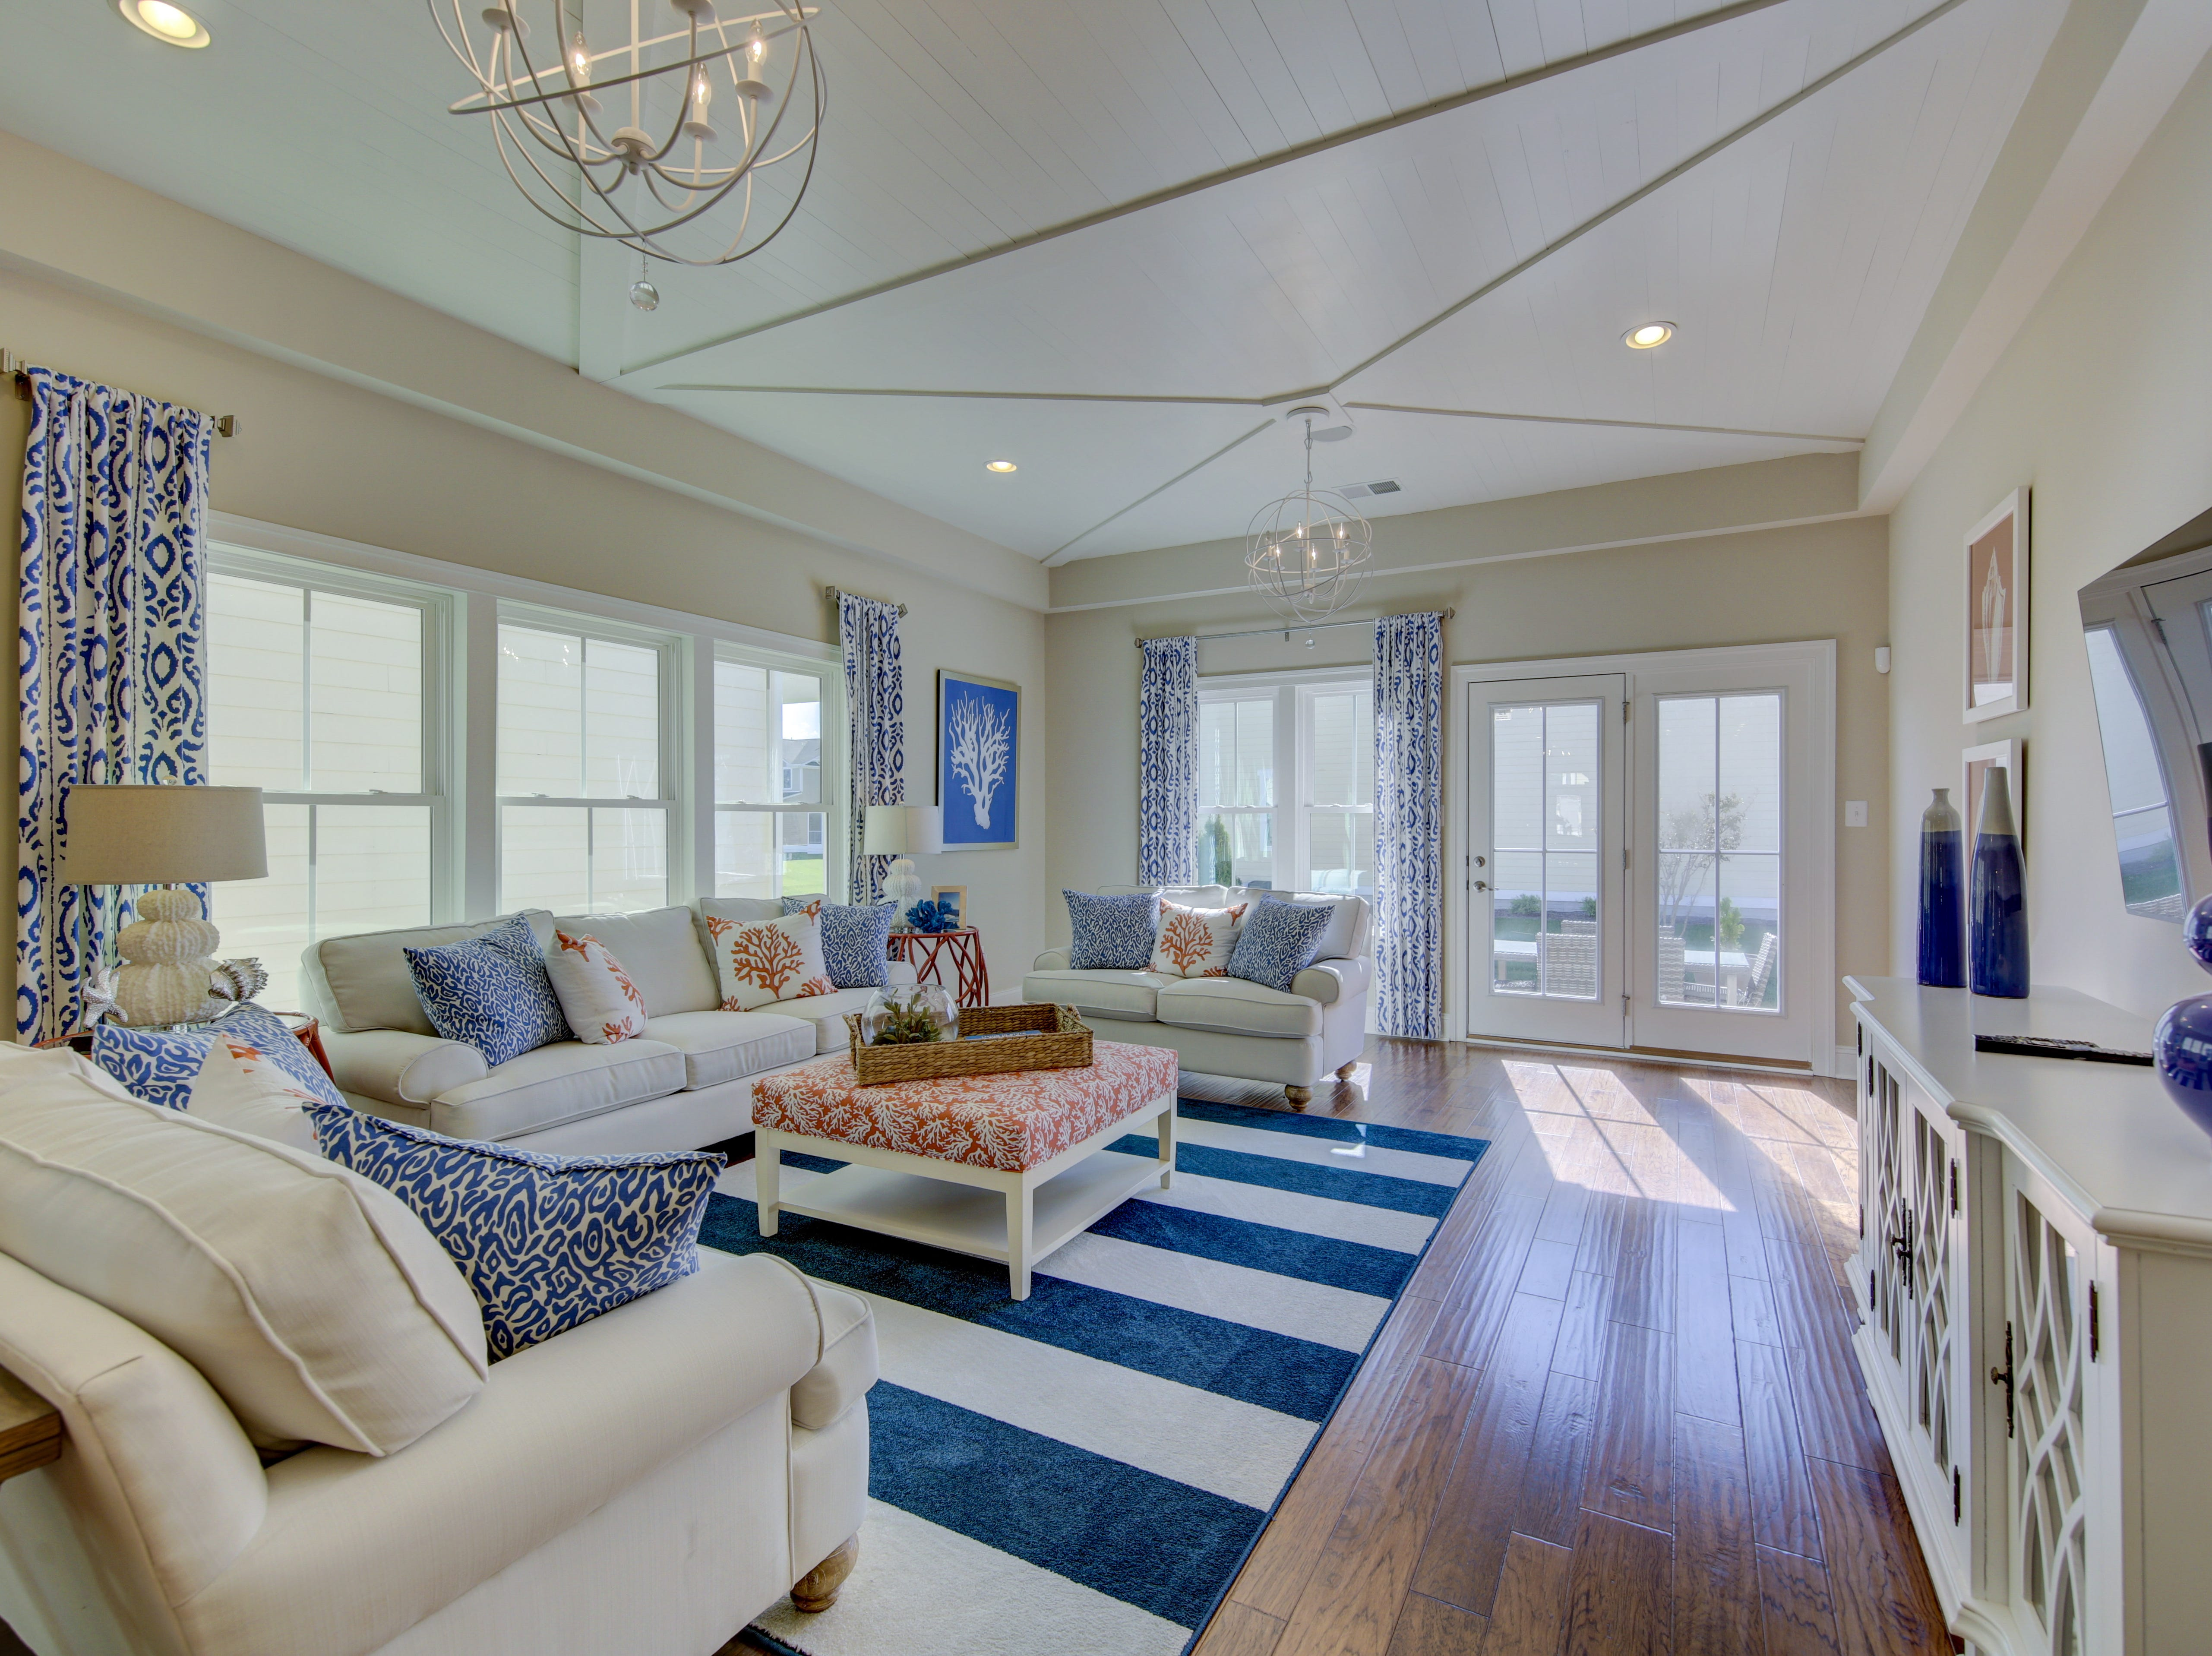 The model home in the Overlook in Selbyville  has an open concept living area.